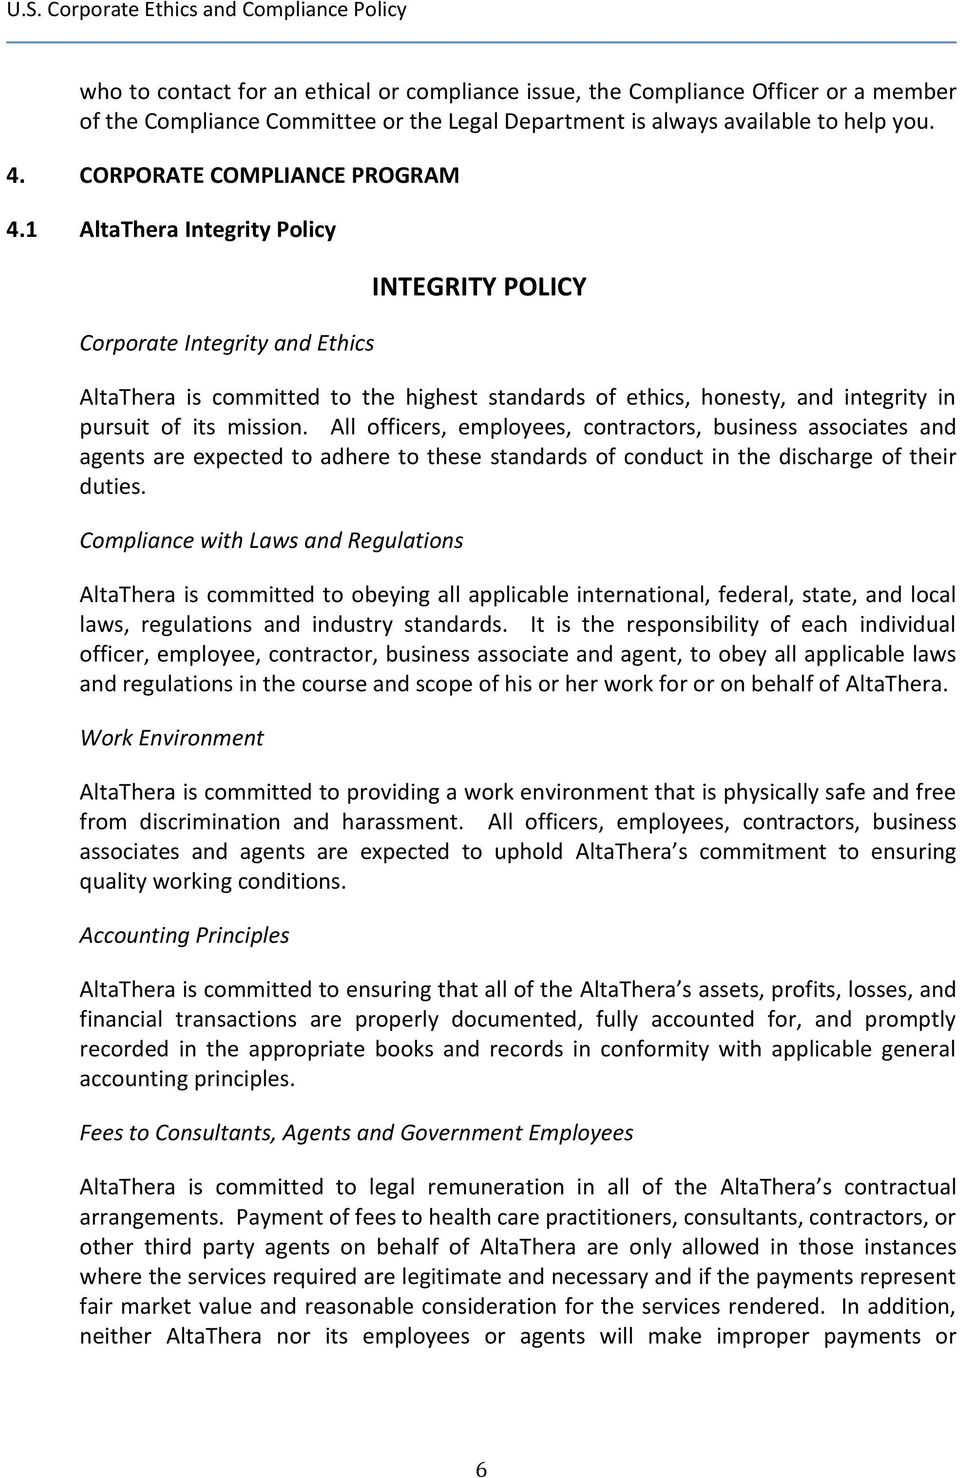 1 AltaThera Integrity Policy Corporate Integrity and Ethics INTEGRITY POLICY AltaThera is committed to the highest standards of ethics, honesty, and integrity in pursuit of its mission.